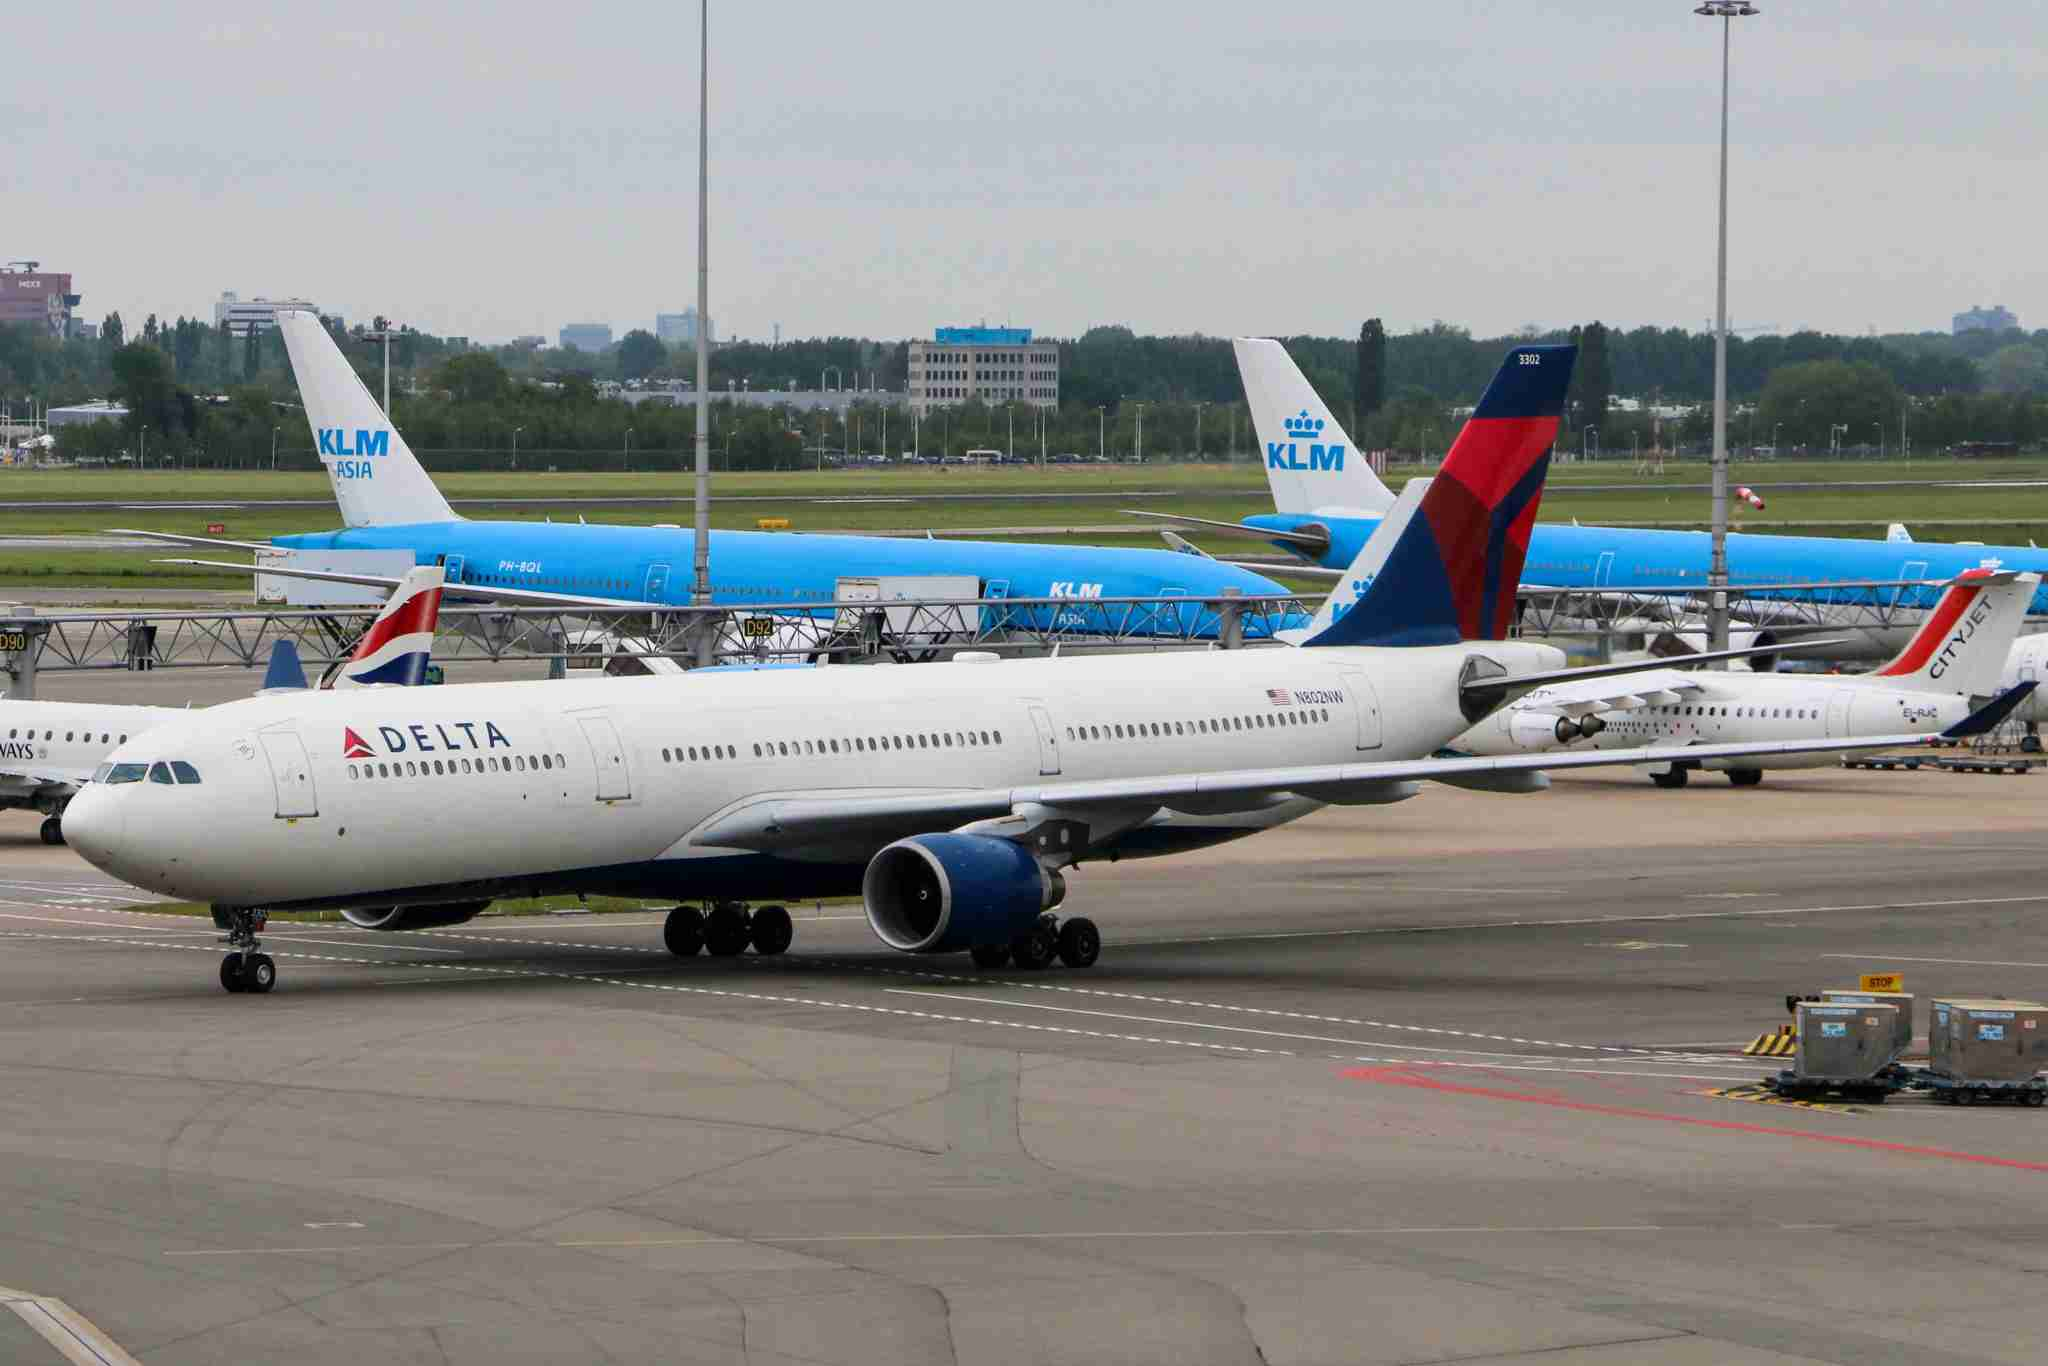 Delta Air Lines as seen in Amsterdam Schiphol International Airport. Delta uses Schiphol as one of the European hubs cooperating with KLM and AirFrance to distribute its passenger to the rest of the European Destinations. Delta Air Lines was founded in 1924 and today is the major American Airline, owning 850 aircrafts. Delta is member of SkyTeam aviation alliance. Delta is one of the last carriers who still uses the jumbo jet Boeing 747-400. (Photo by Nicolas Economou/NurPhoto via Getty Images)